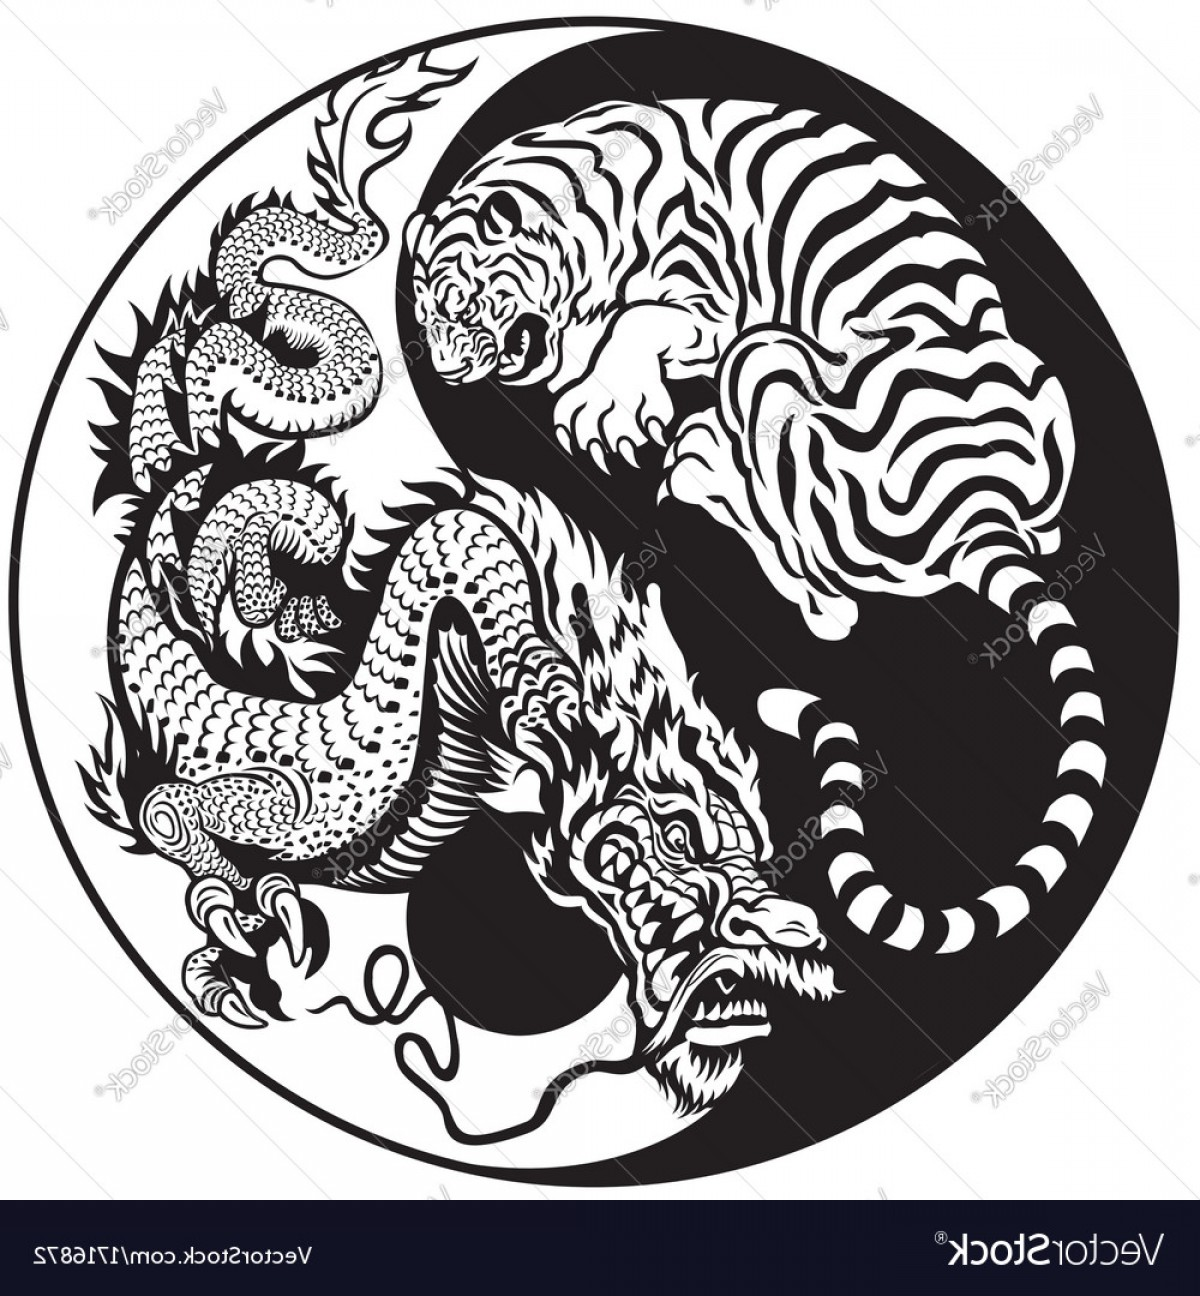 New Balance Vector: Yin Yang Dragon And Tiger Black White Vector